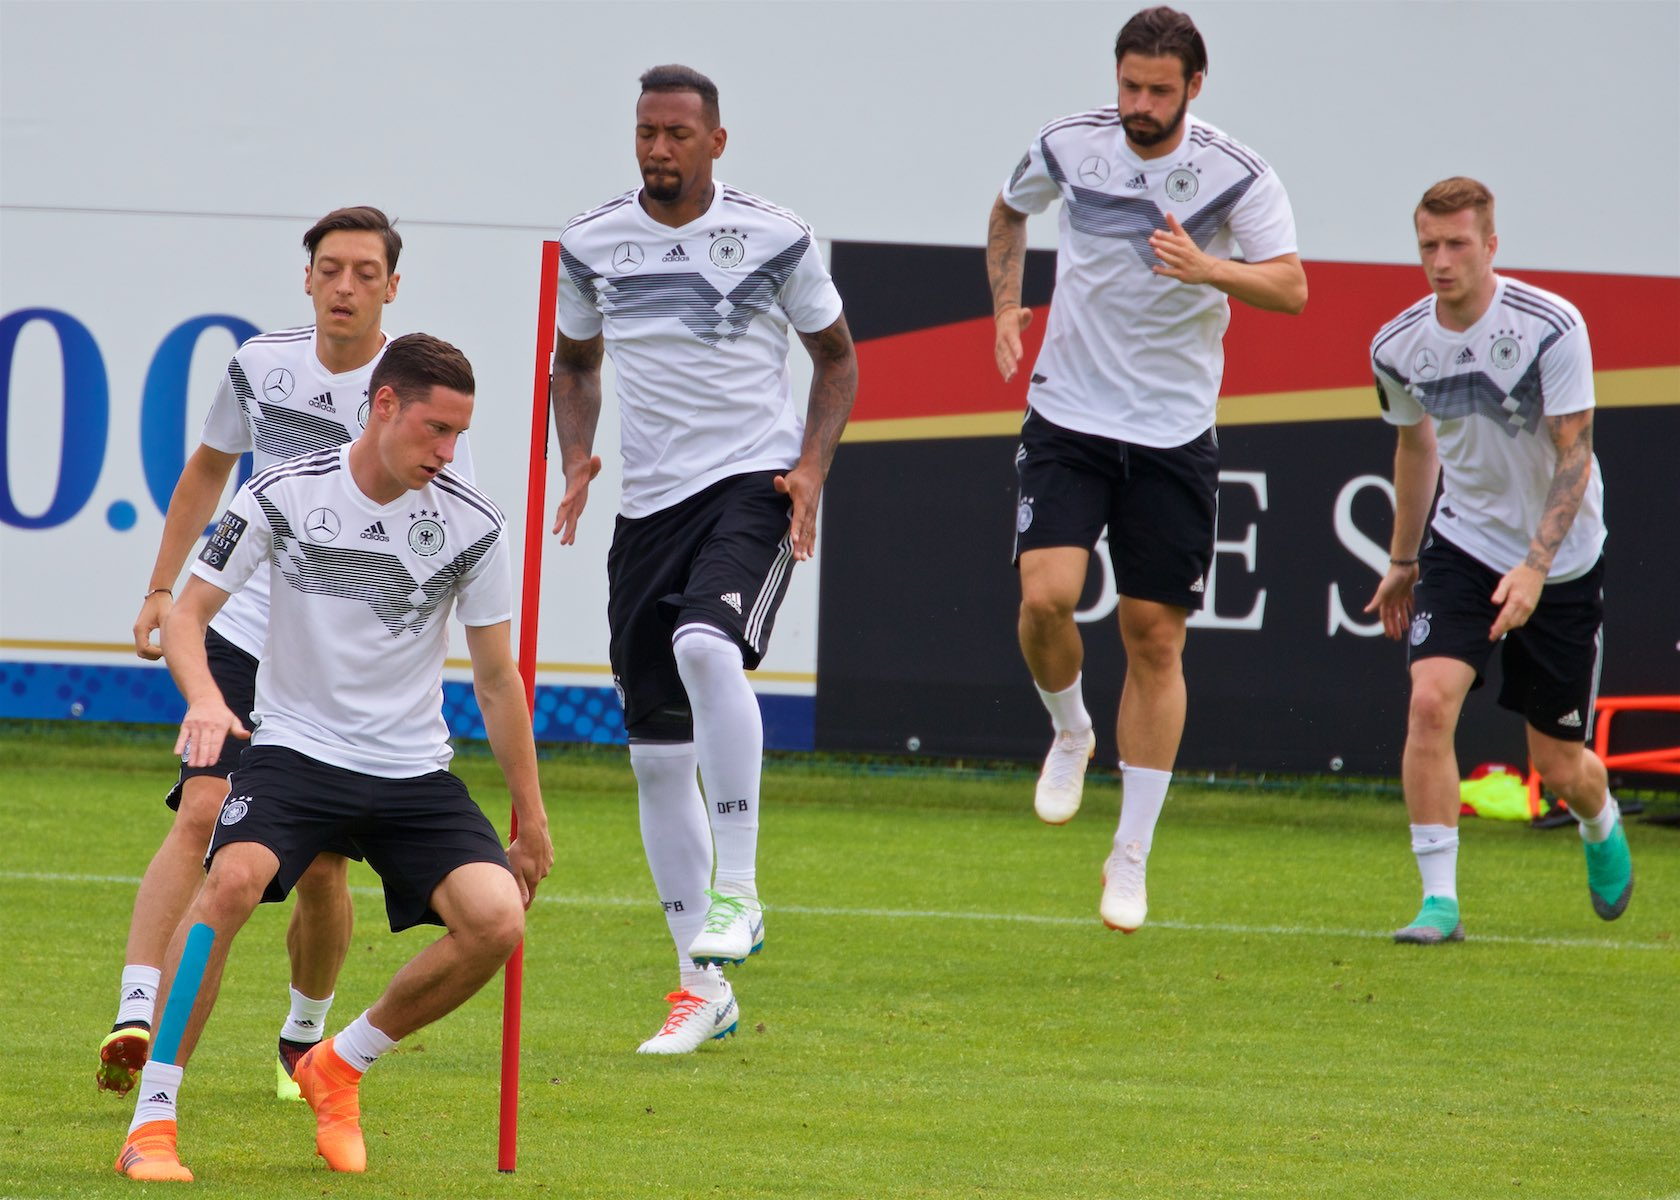 German National Team training  for the 2018 World Cup in Russia.